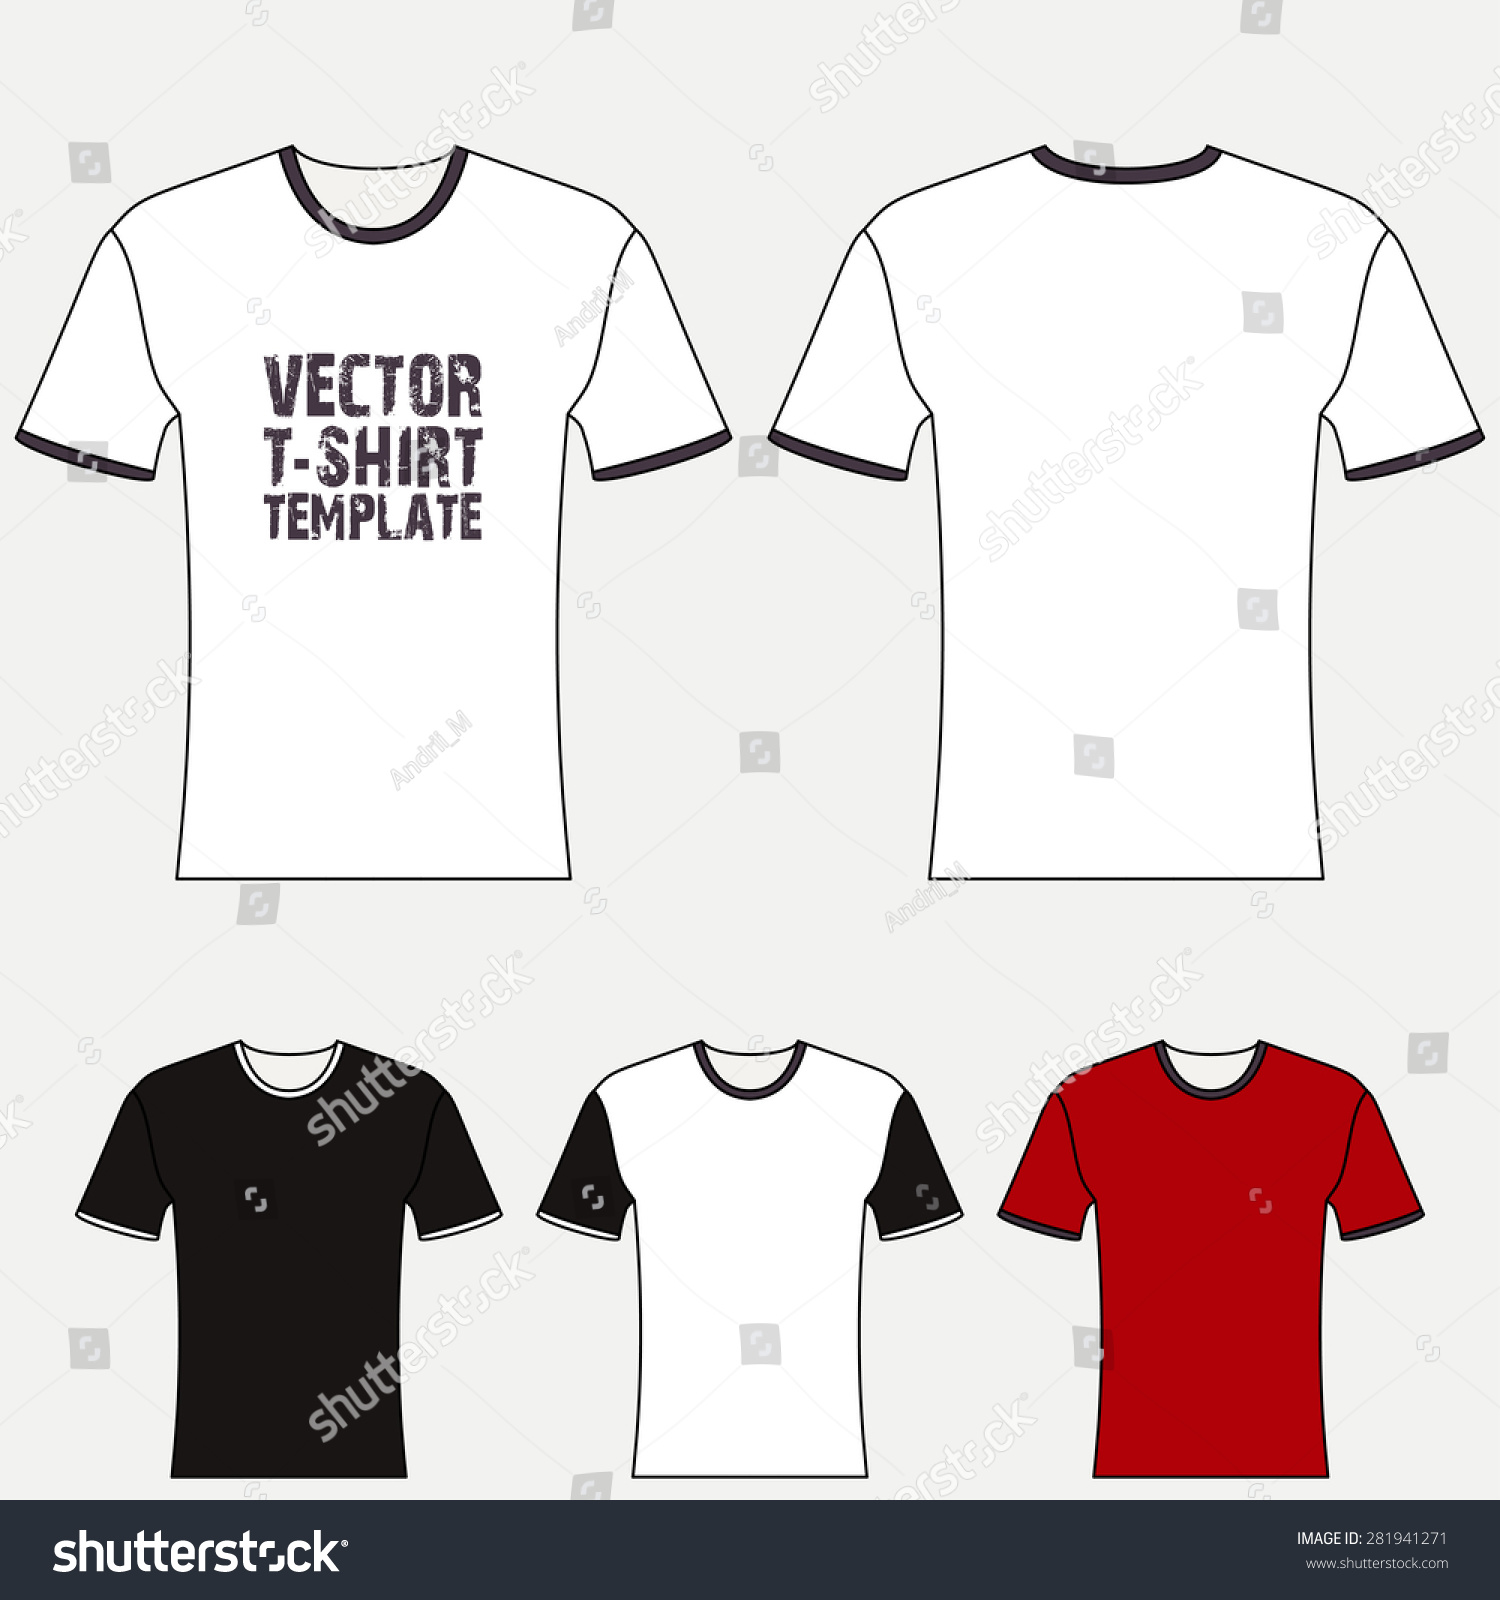 White t shirt front and back template - T Shirt Blank Design Template Front And Back View Vector